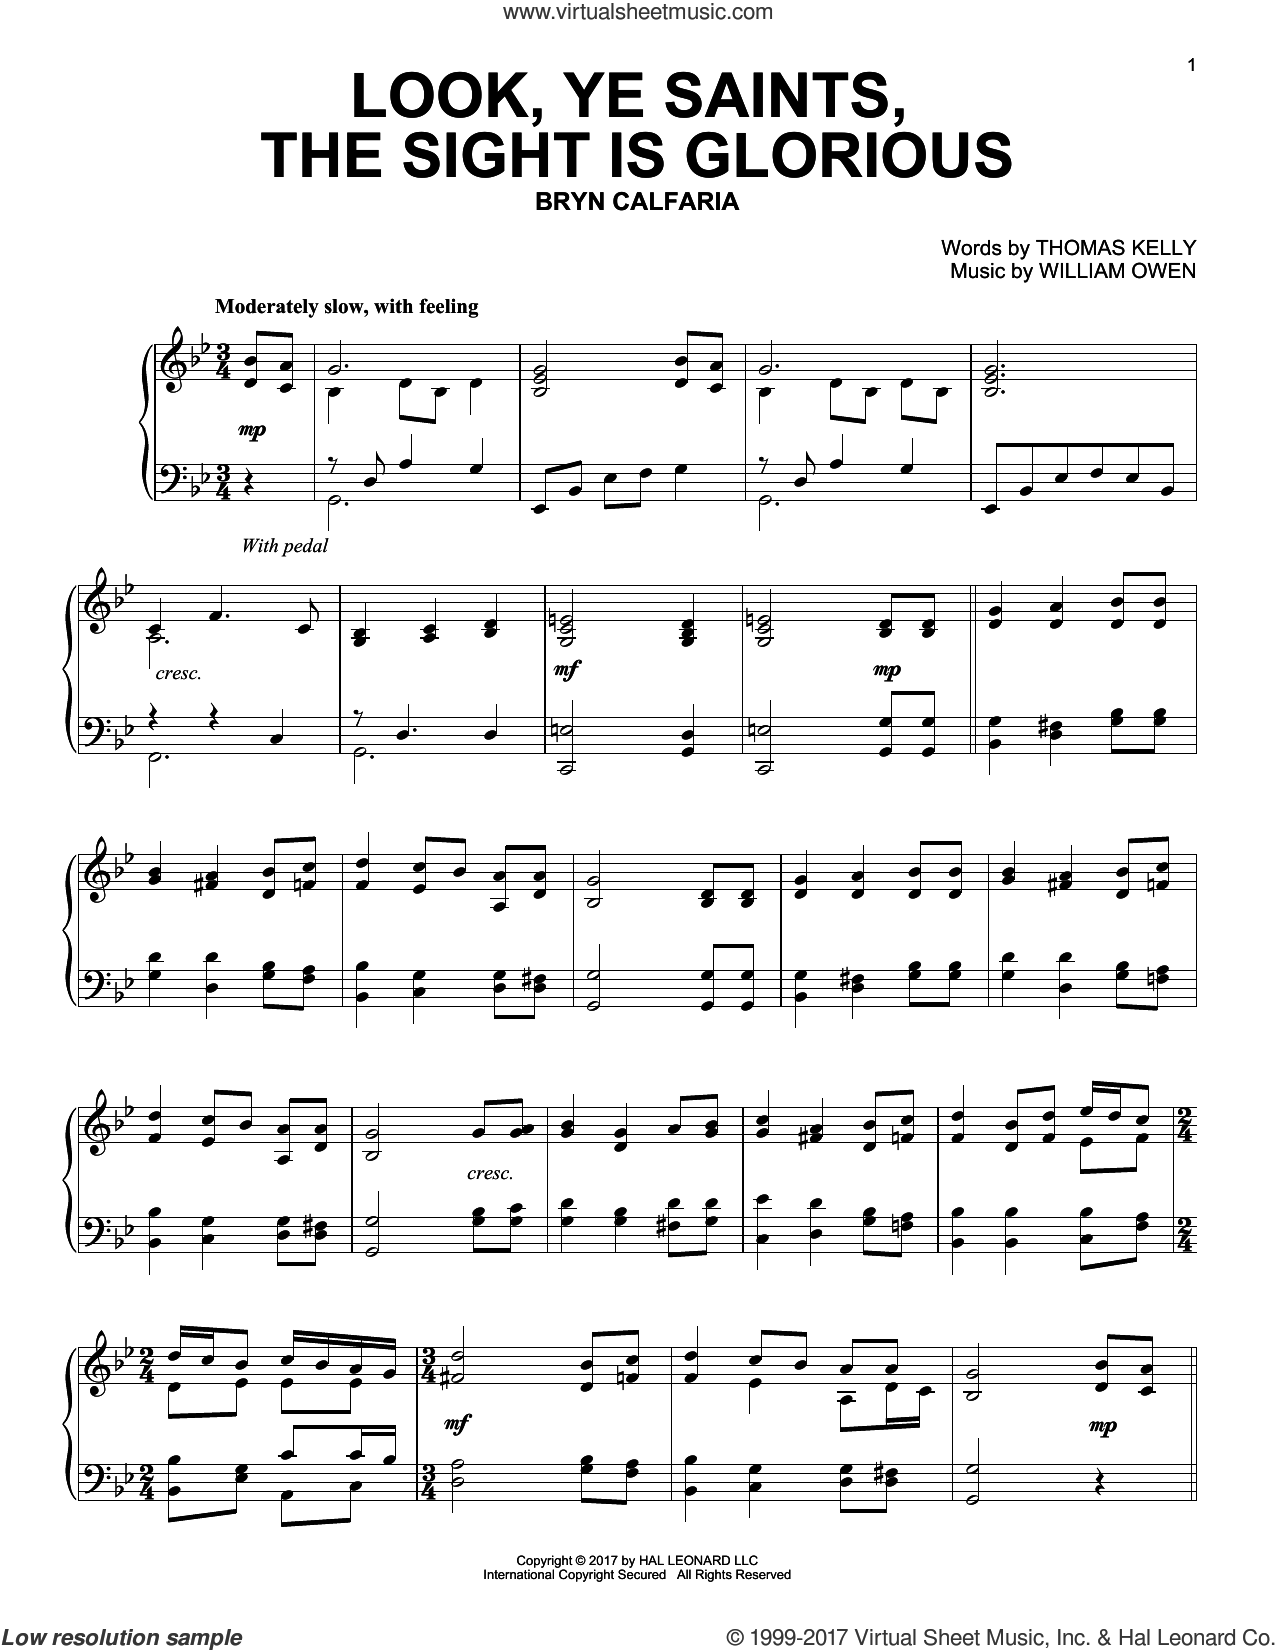 Look, Ye Saints, The Sight Is Glorious sheet music for piano solo by William Owen and Thomas Kelly, intermediate skill level